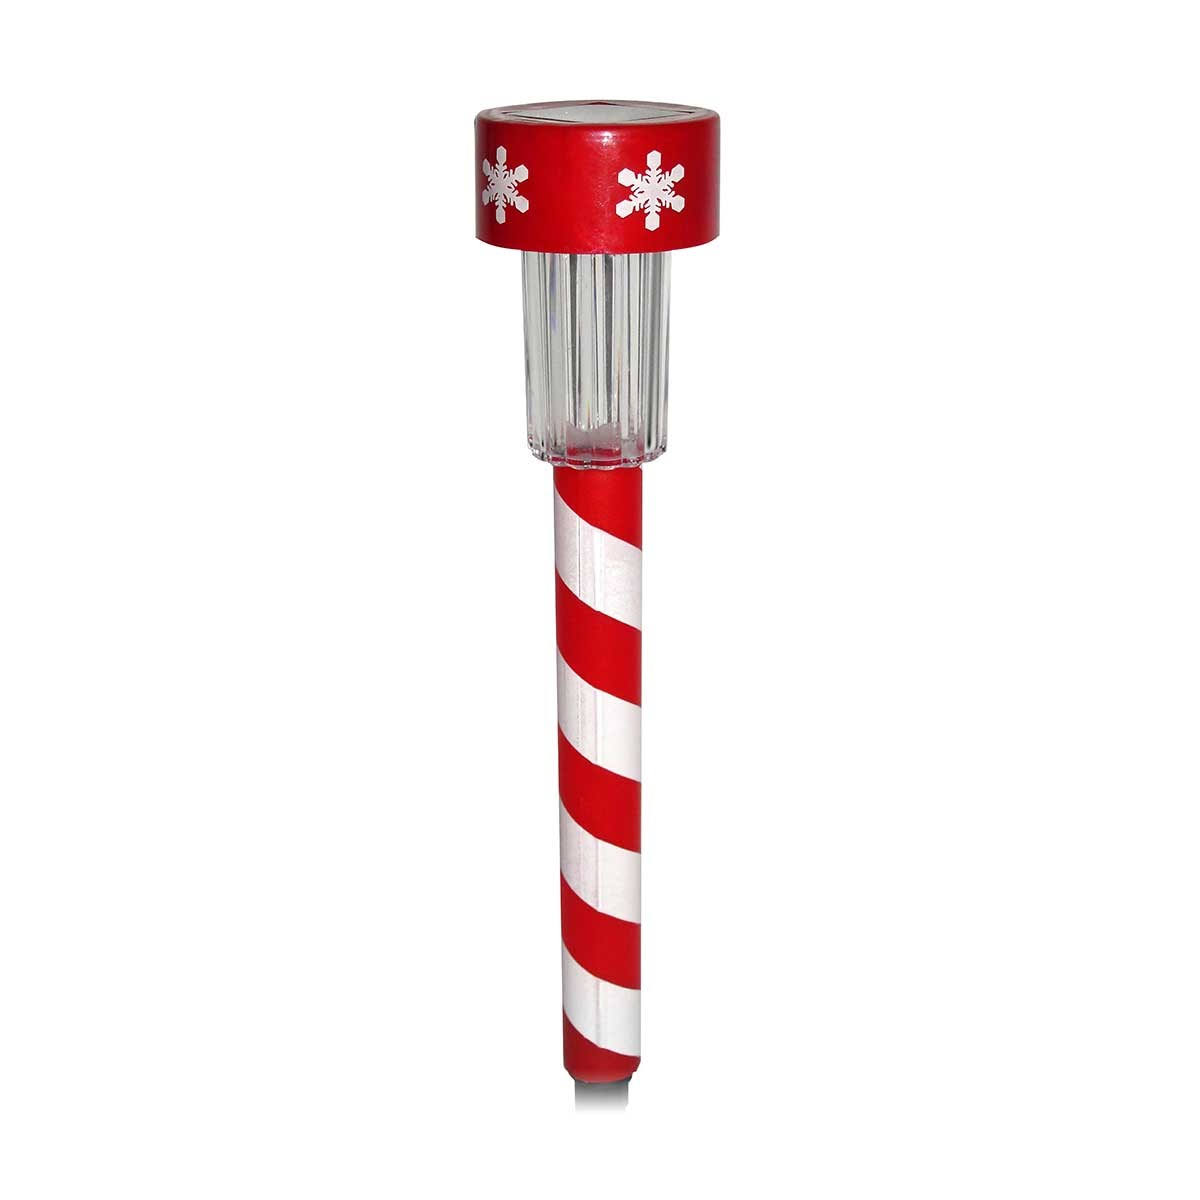 Alpine Solar Mini Candy Cane Garden Stakes with LED